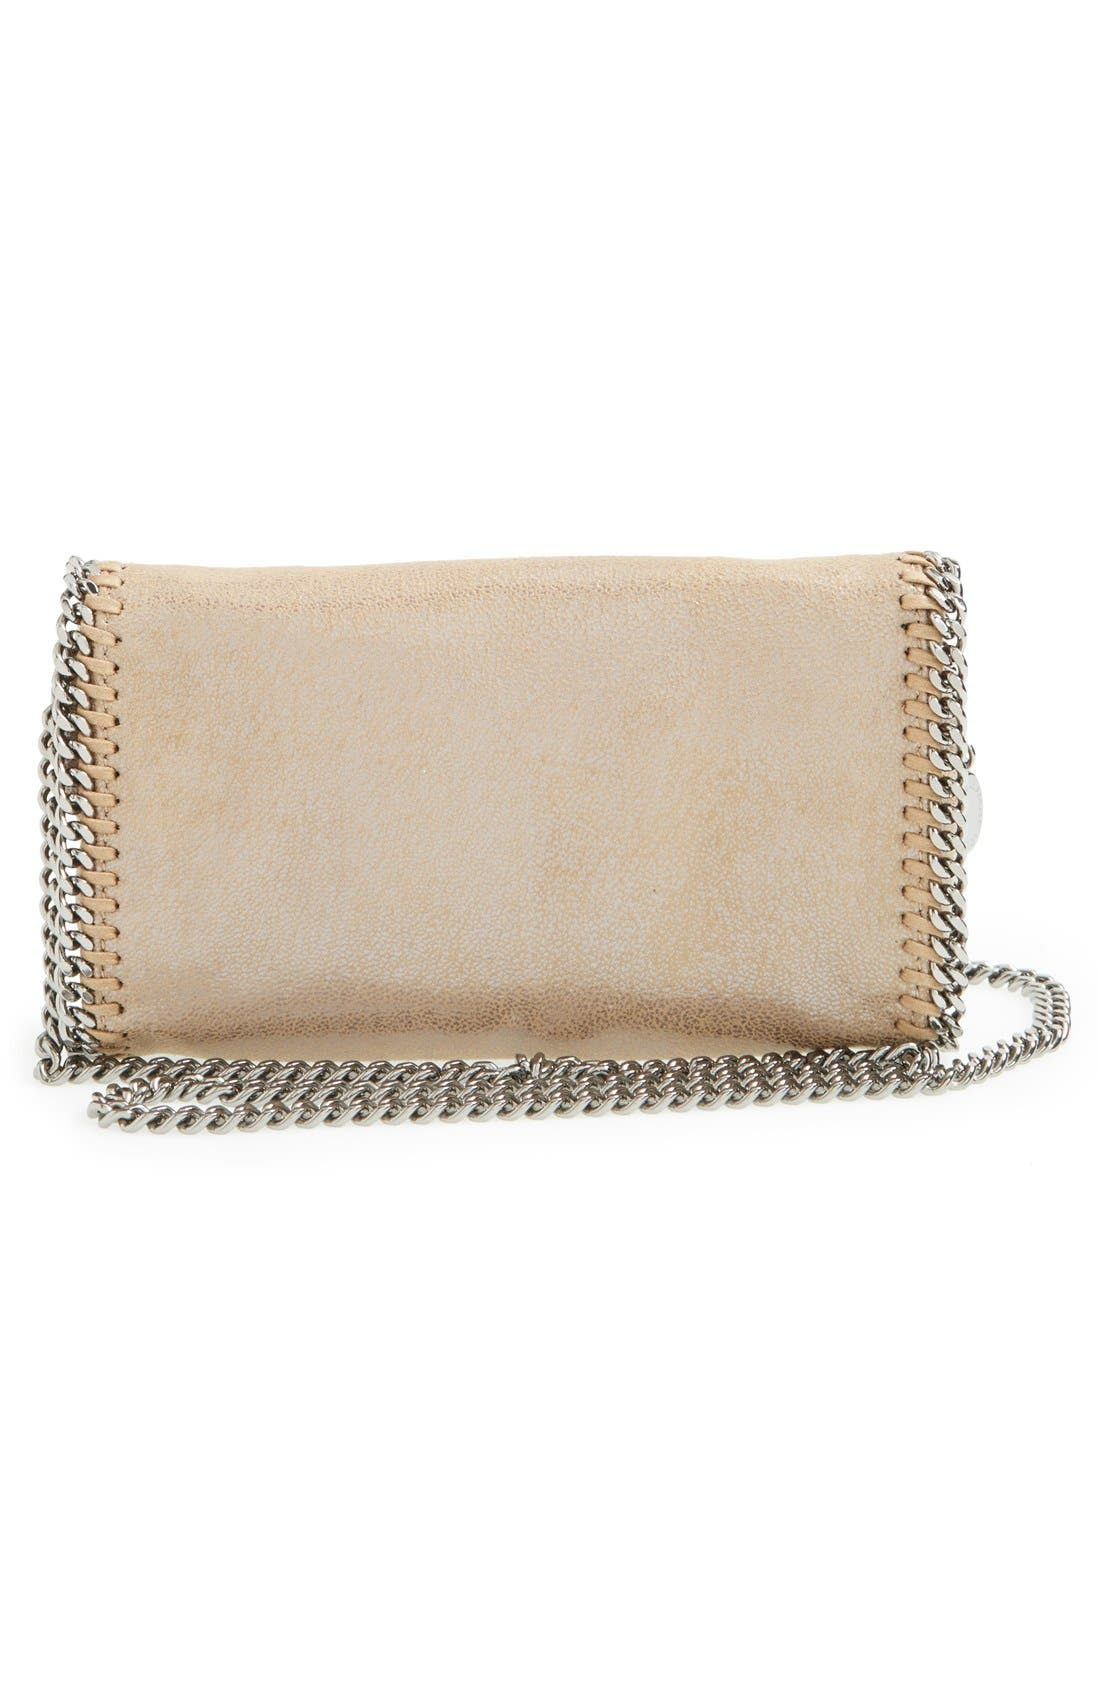 Alternate Image 3  - Stella McCartney 'Falabella' Crossbody Bag